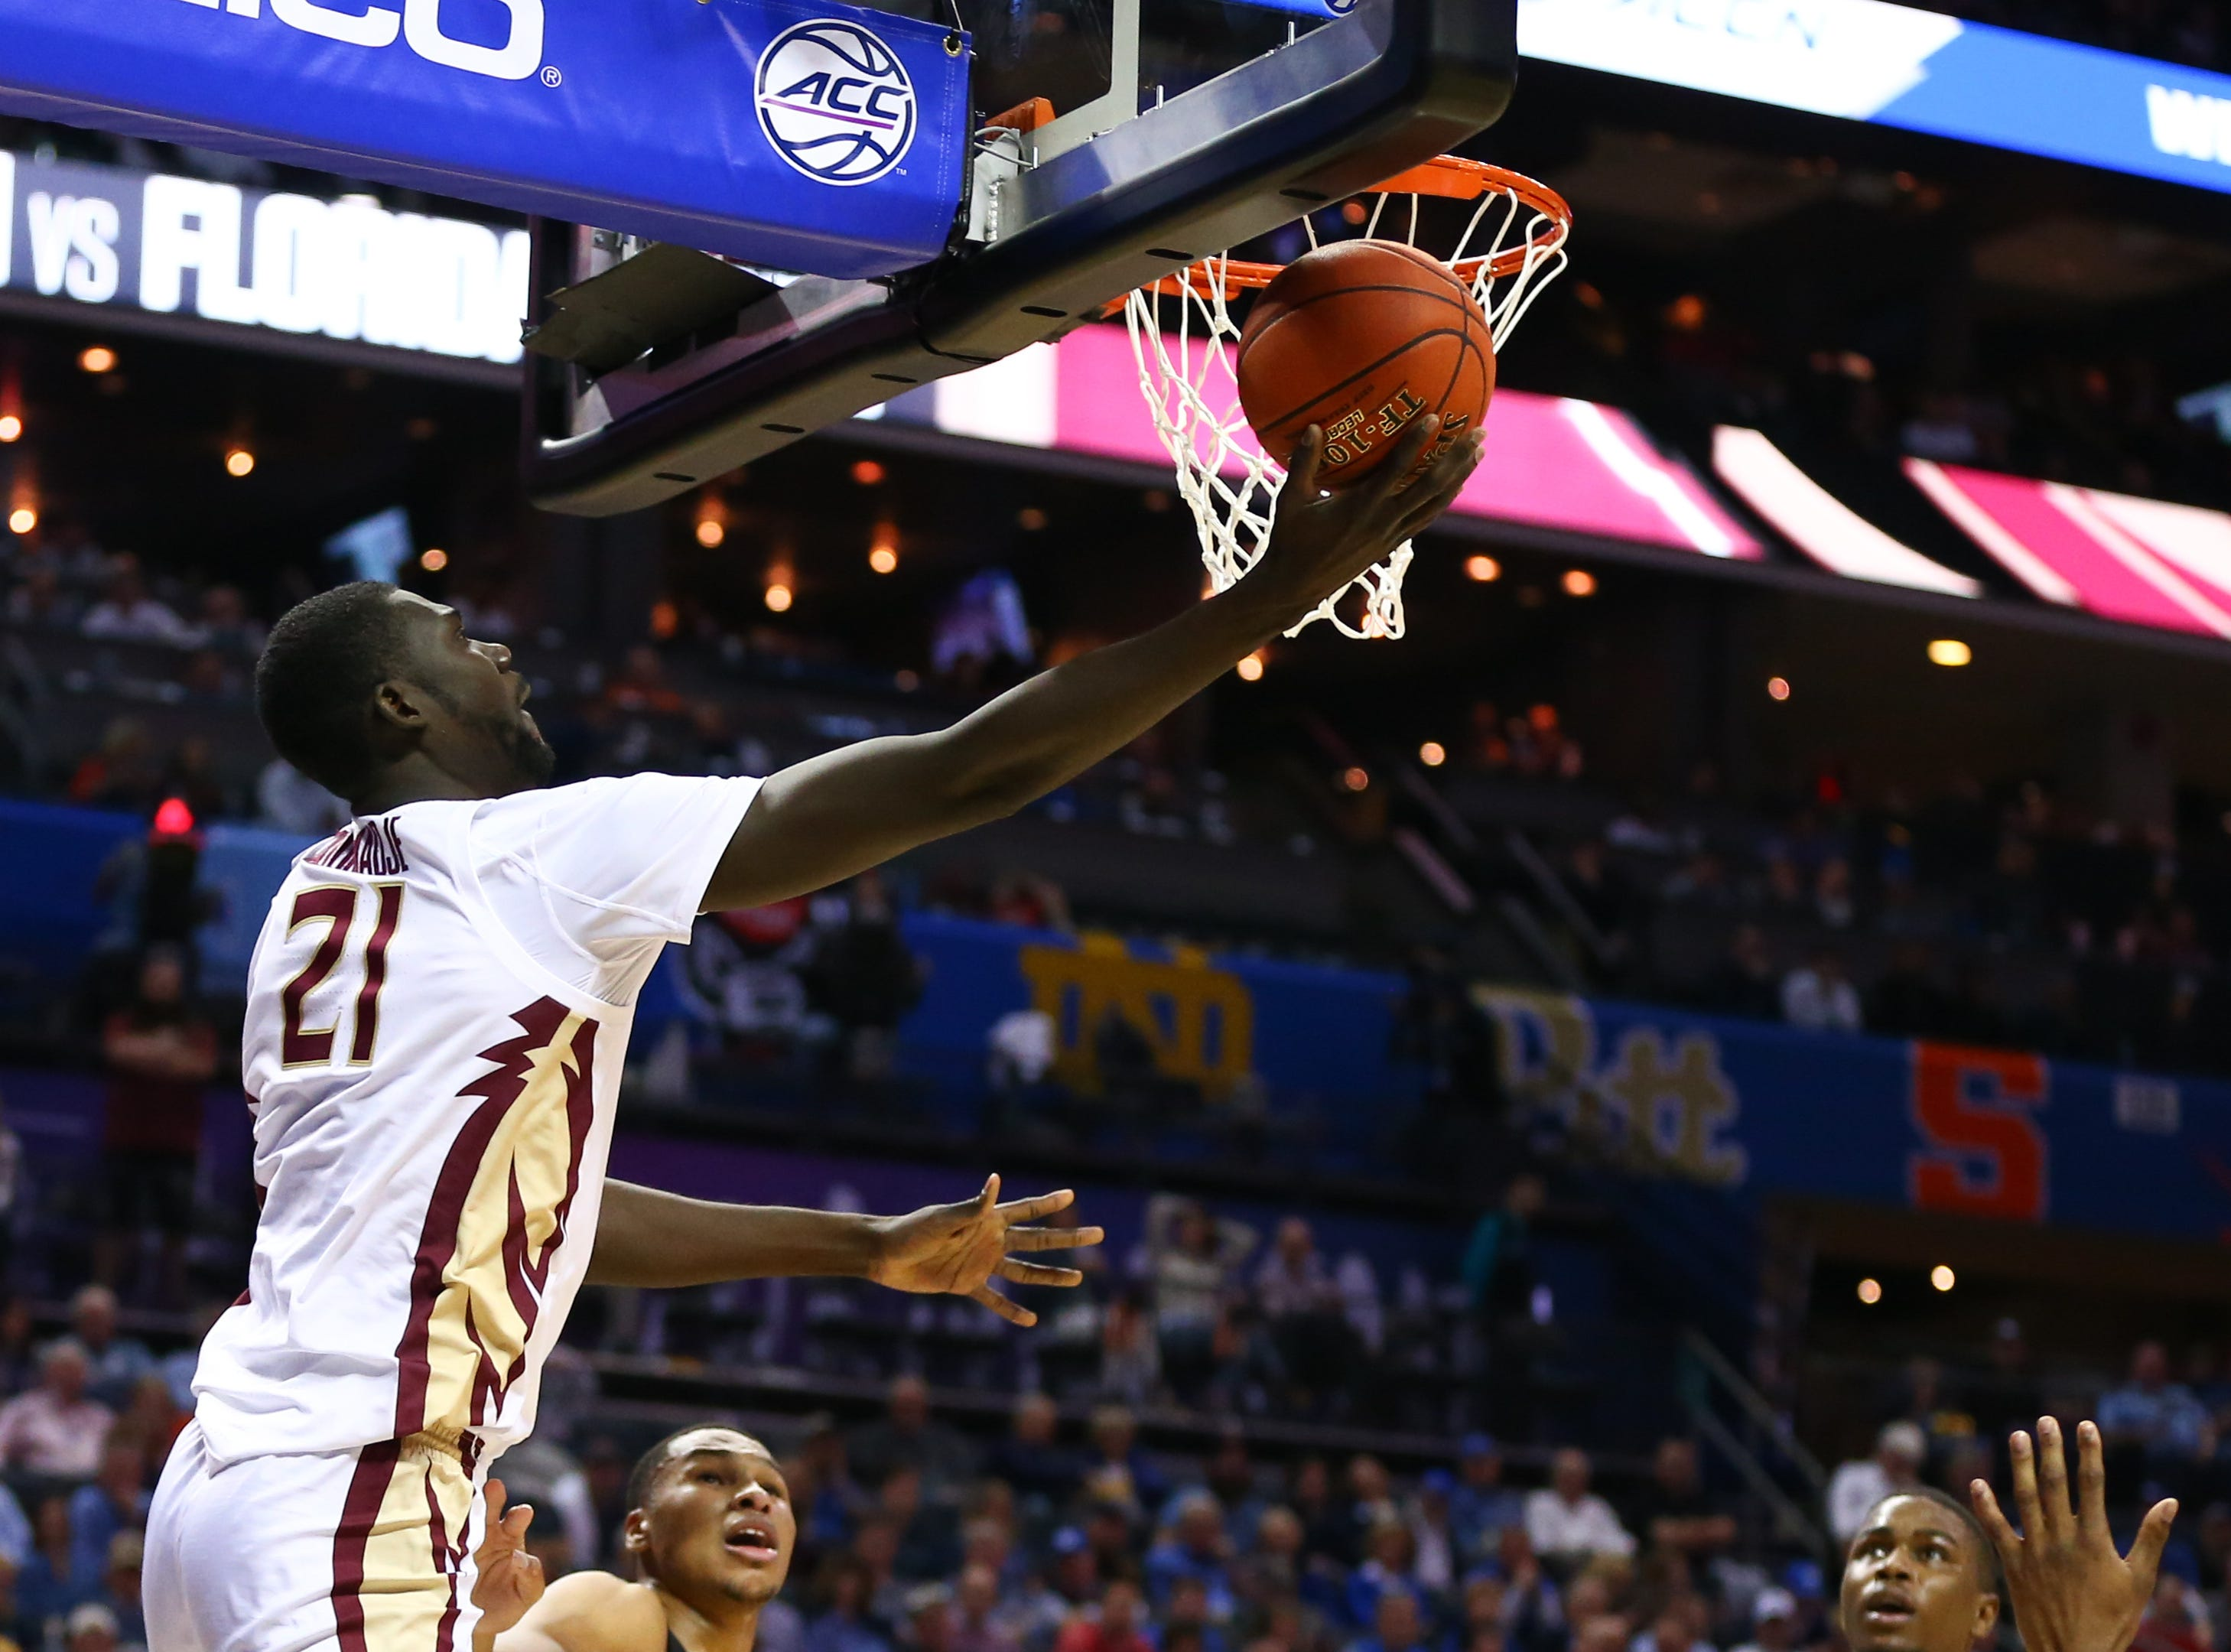 Mar 14, 2019; Charlotte, NC, USA; Florida State Seminoles center Christ Koumadje (21) shoots the ball against the Virginia Tech Hokies in the first half in the ACC conference tournament at Spectrum Center. Mandatory Credit: Jeremy Brevard-USA TODAY Sports